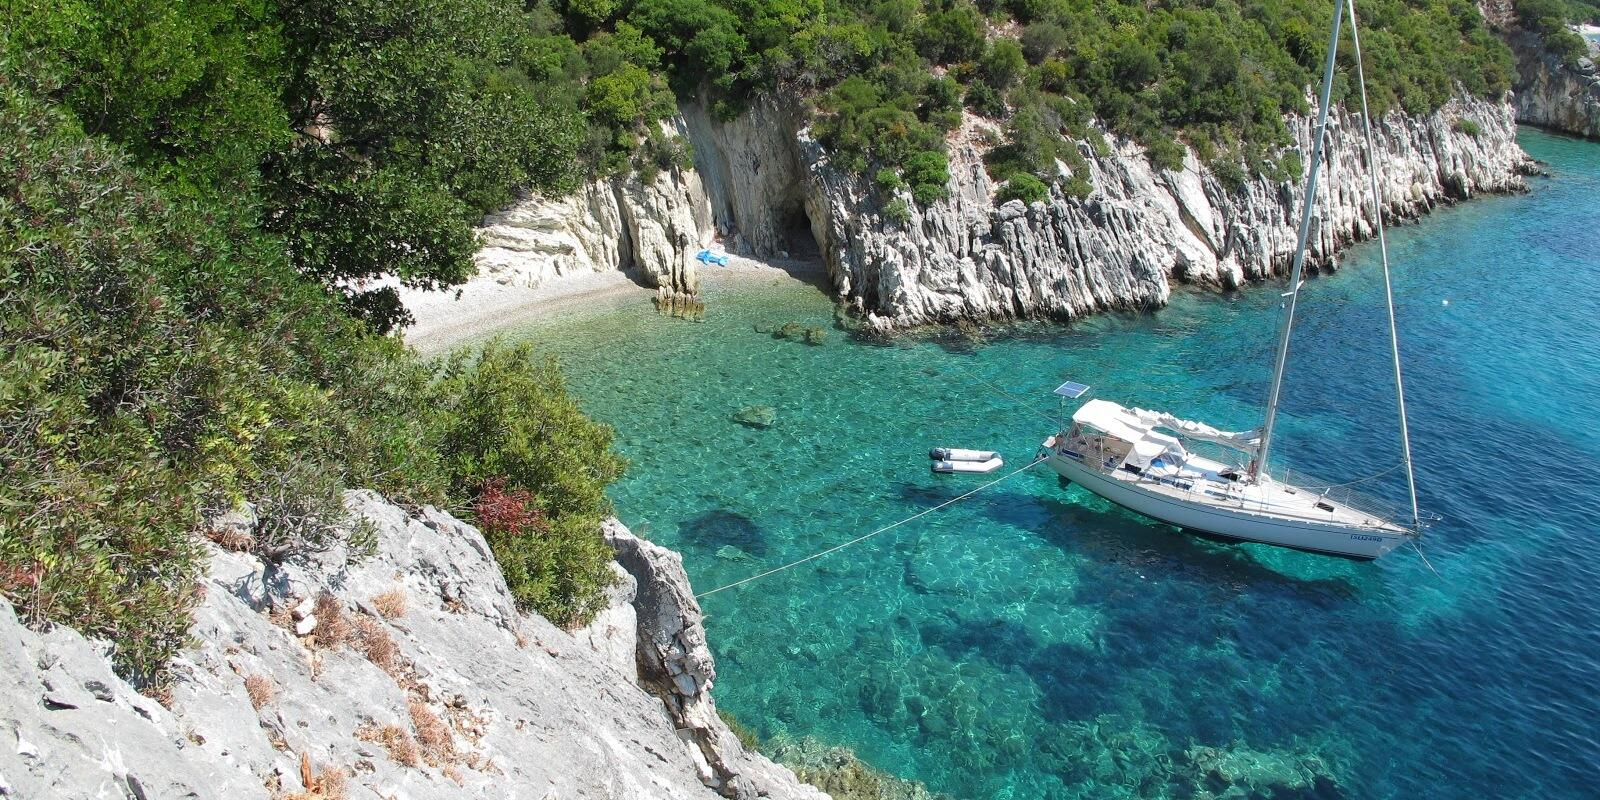 All Inclusive Cruise to the Ionian Islands - Just think about relaxing ... we'll take care of the rest!